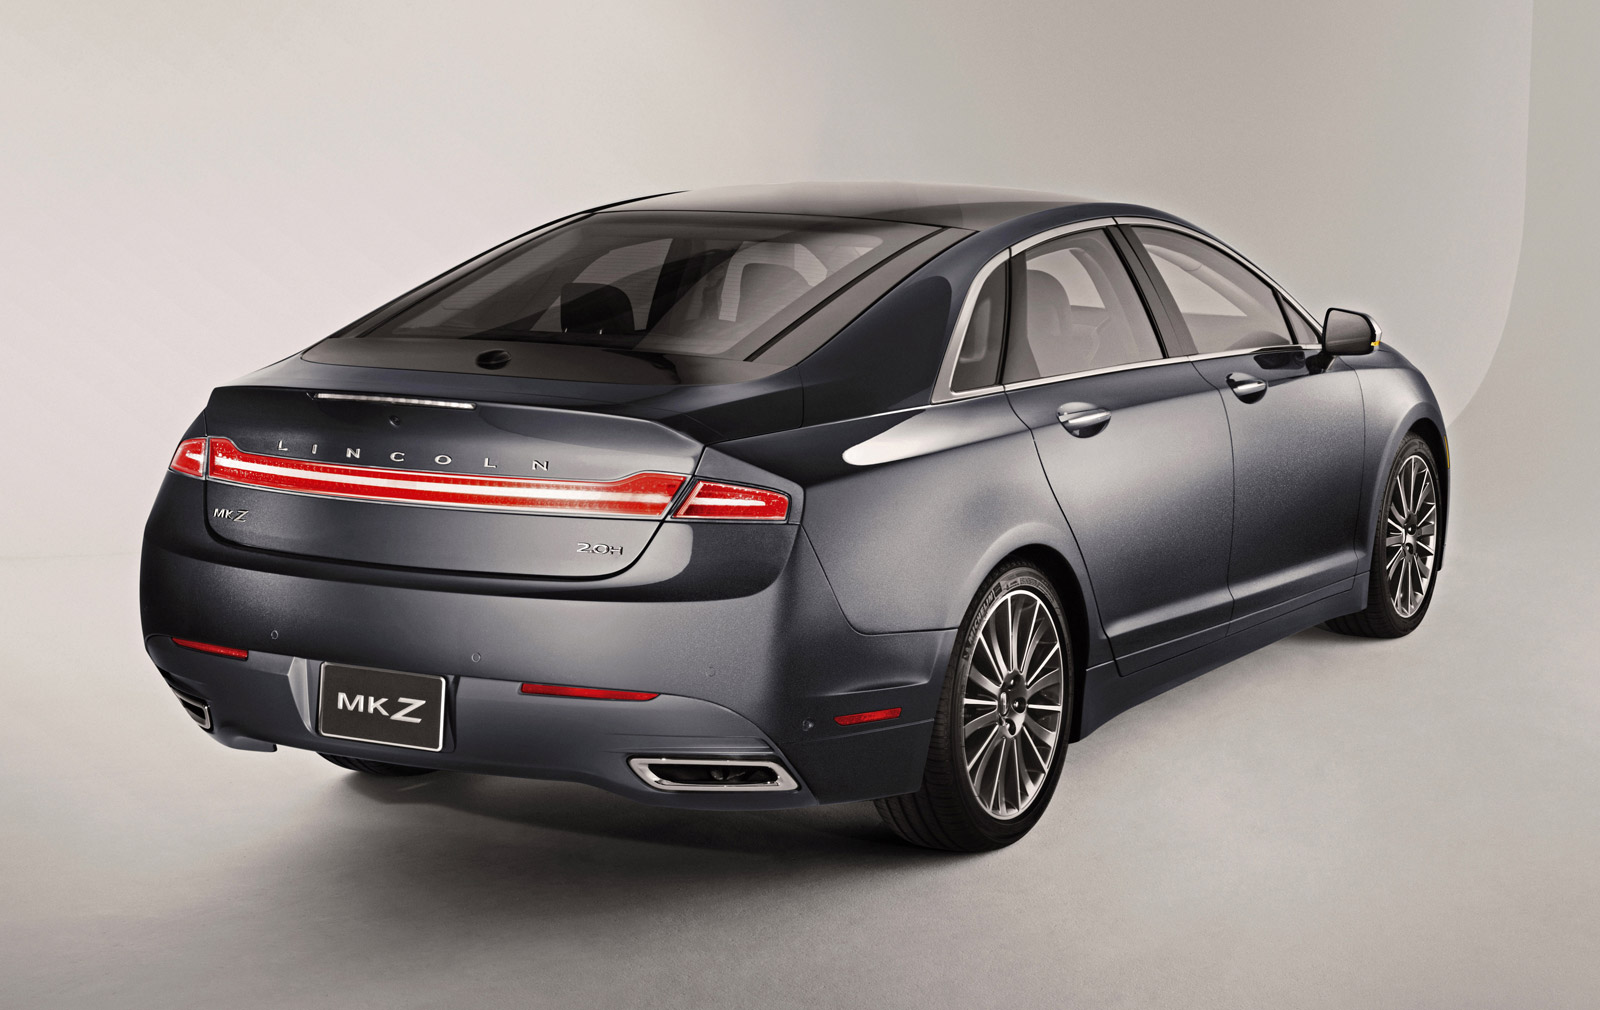 2015 lincoln mkz information and photos zombiedrive. Black Bedroom Furniture Sets. Home Design Ideas